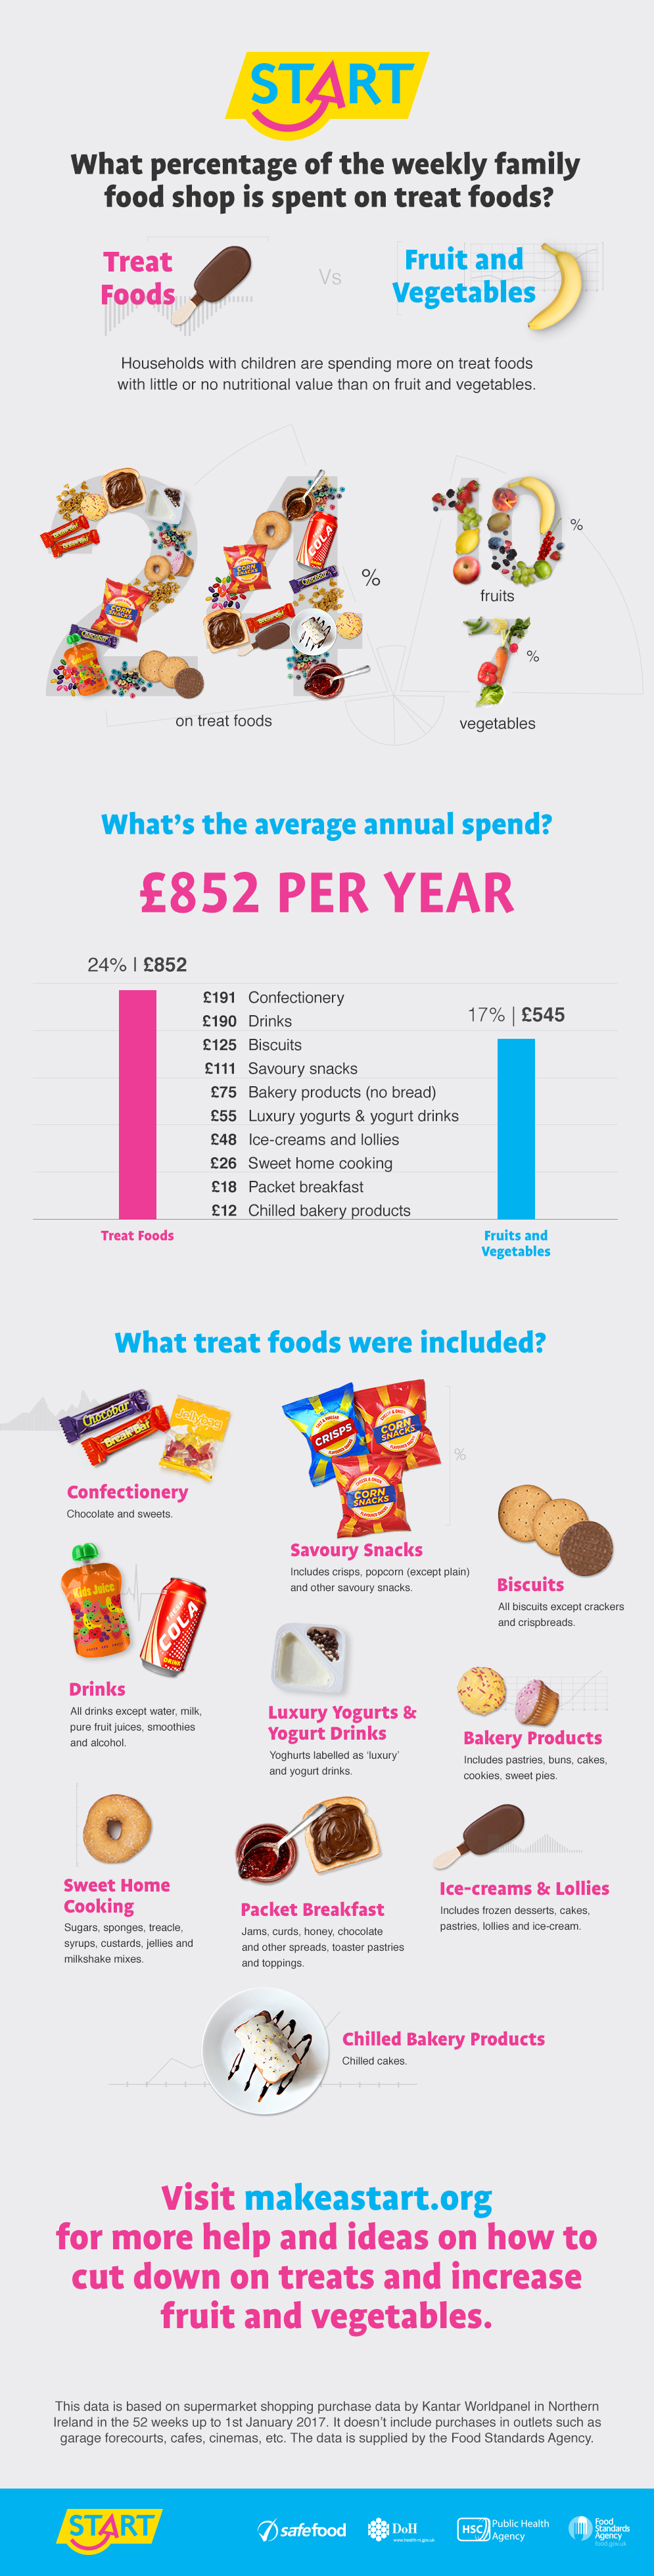 An info graphic of treat food